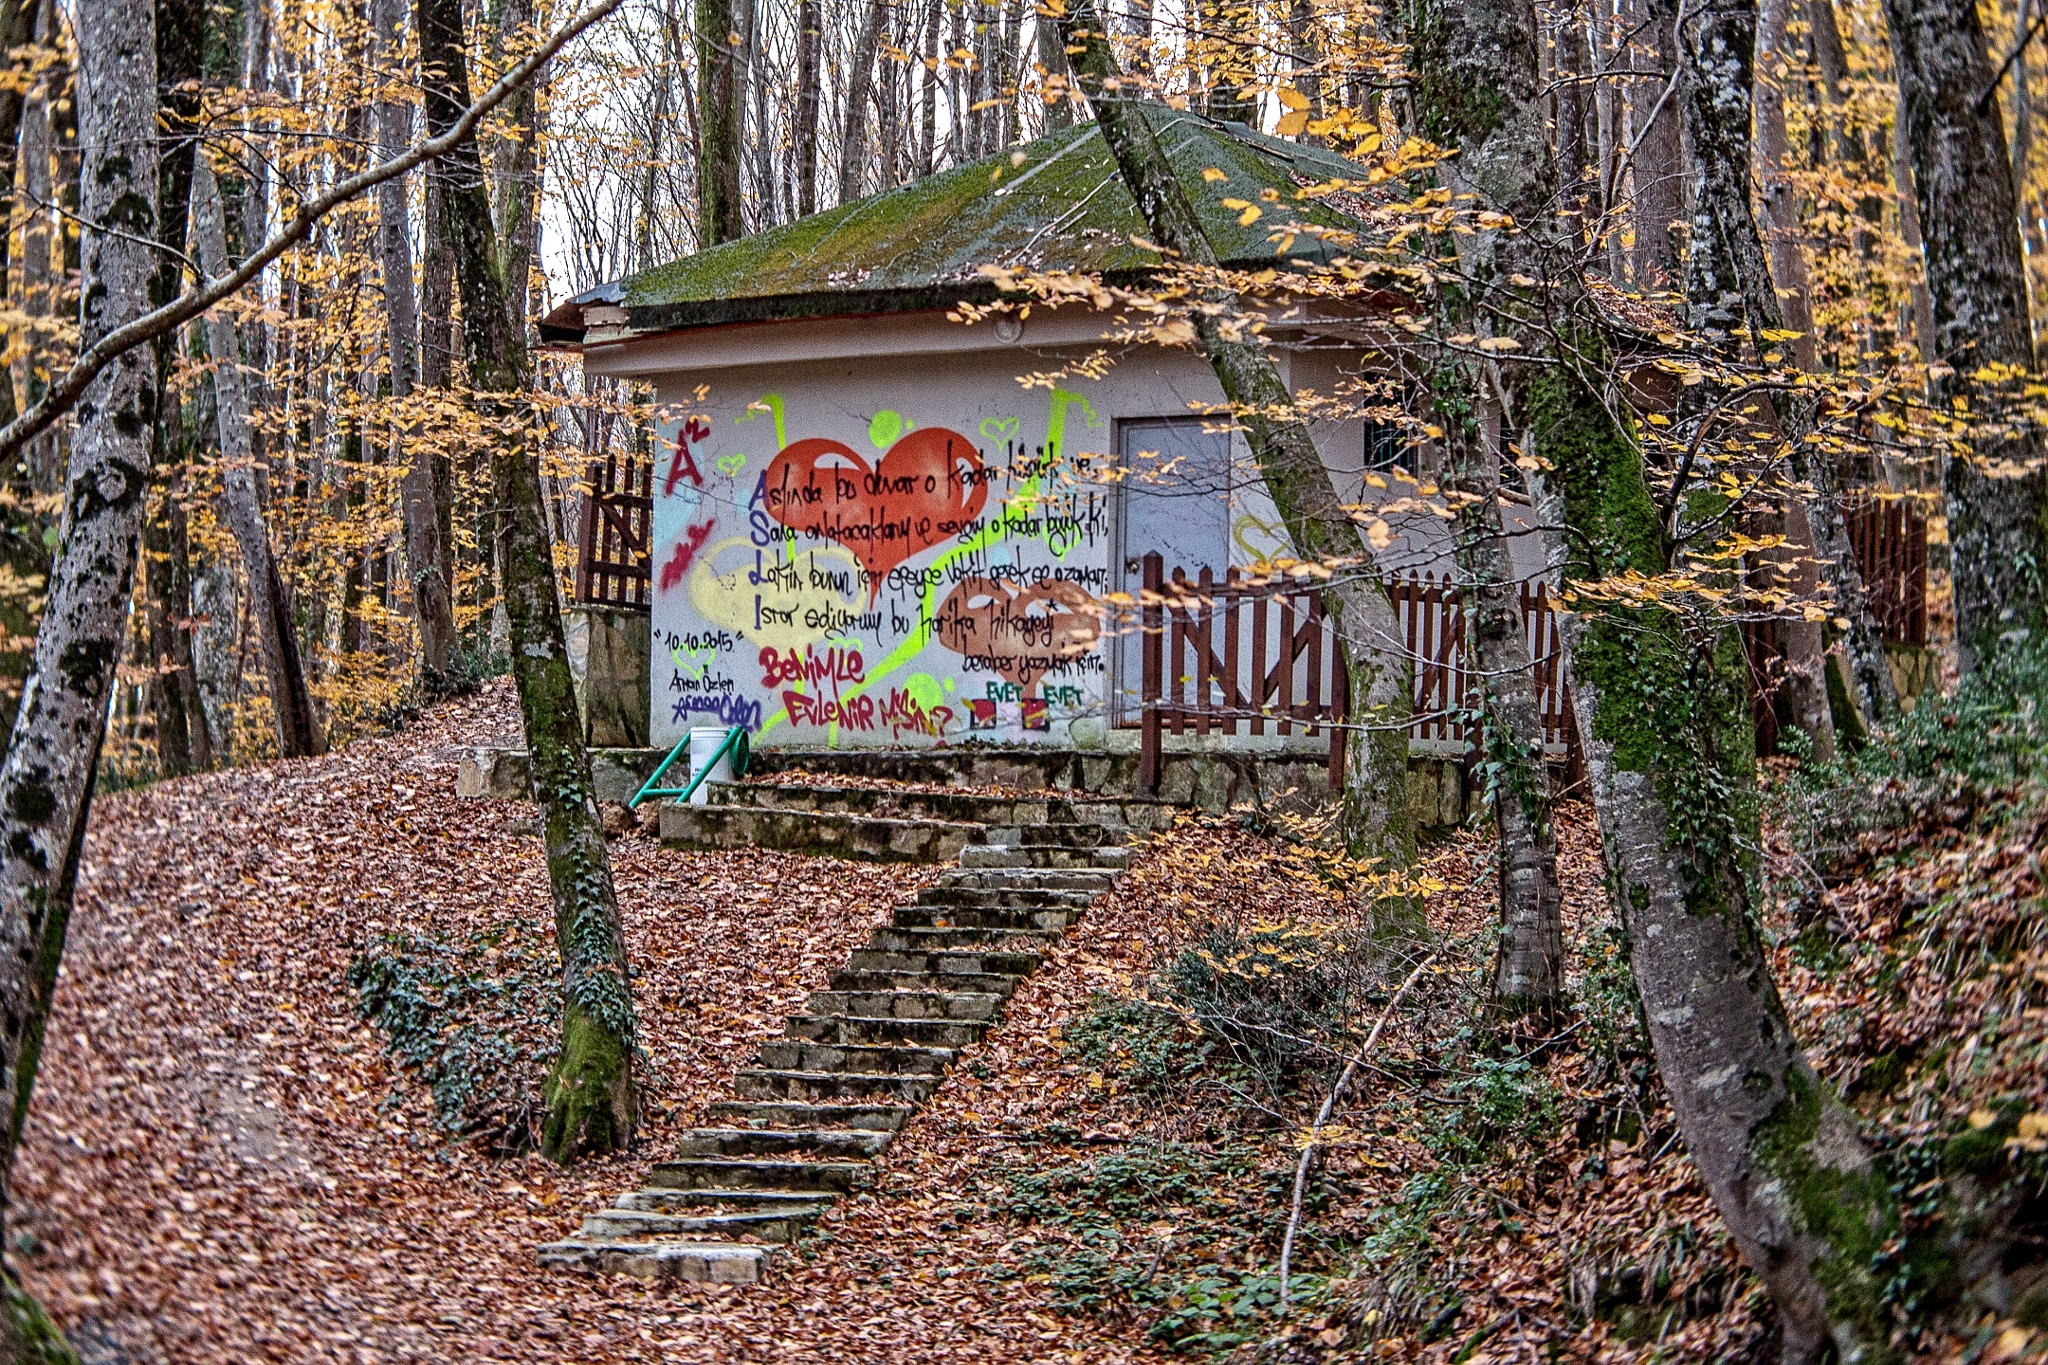 Graffiti in the forest by cenk sarvan